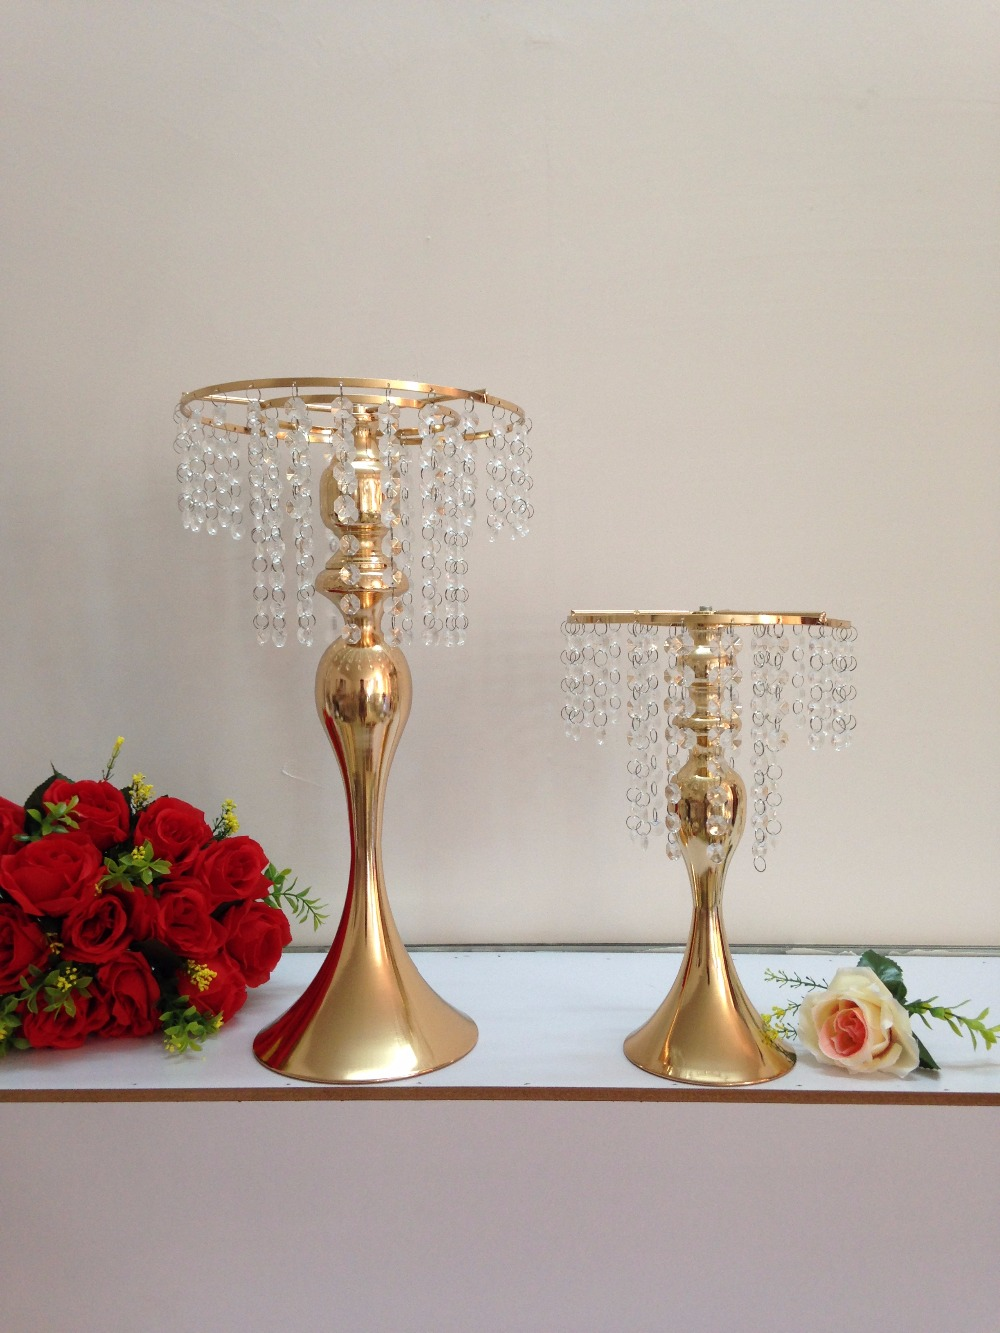 Cm quot small size gold wedding flower vase